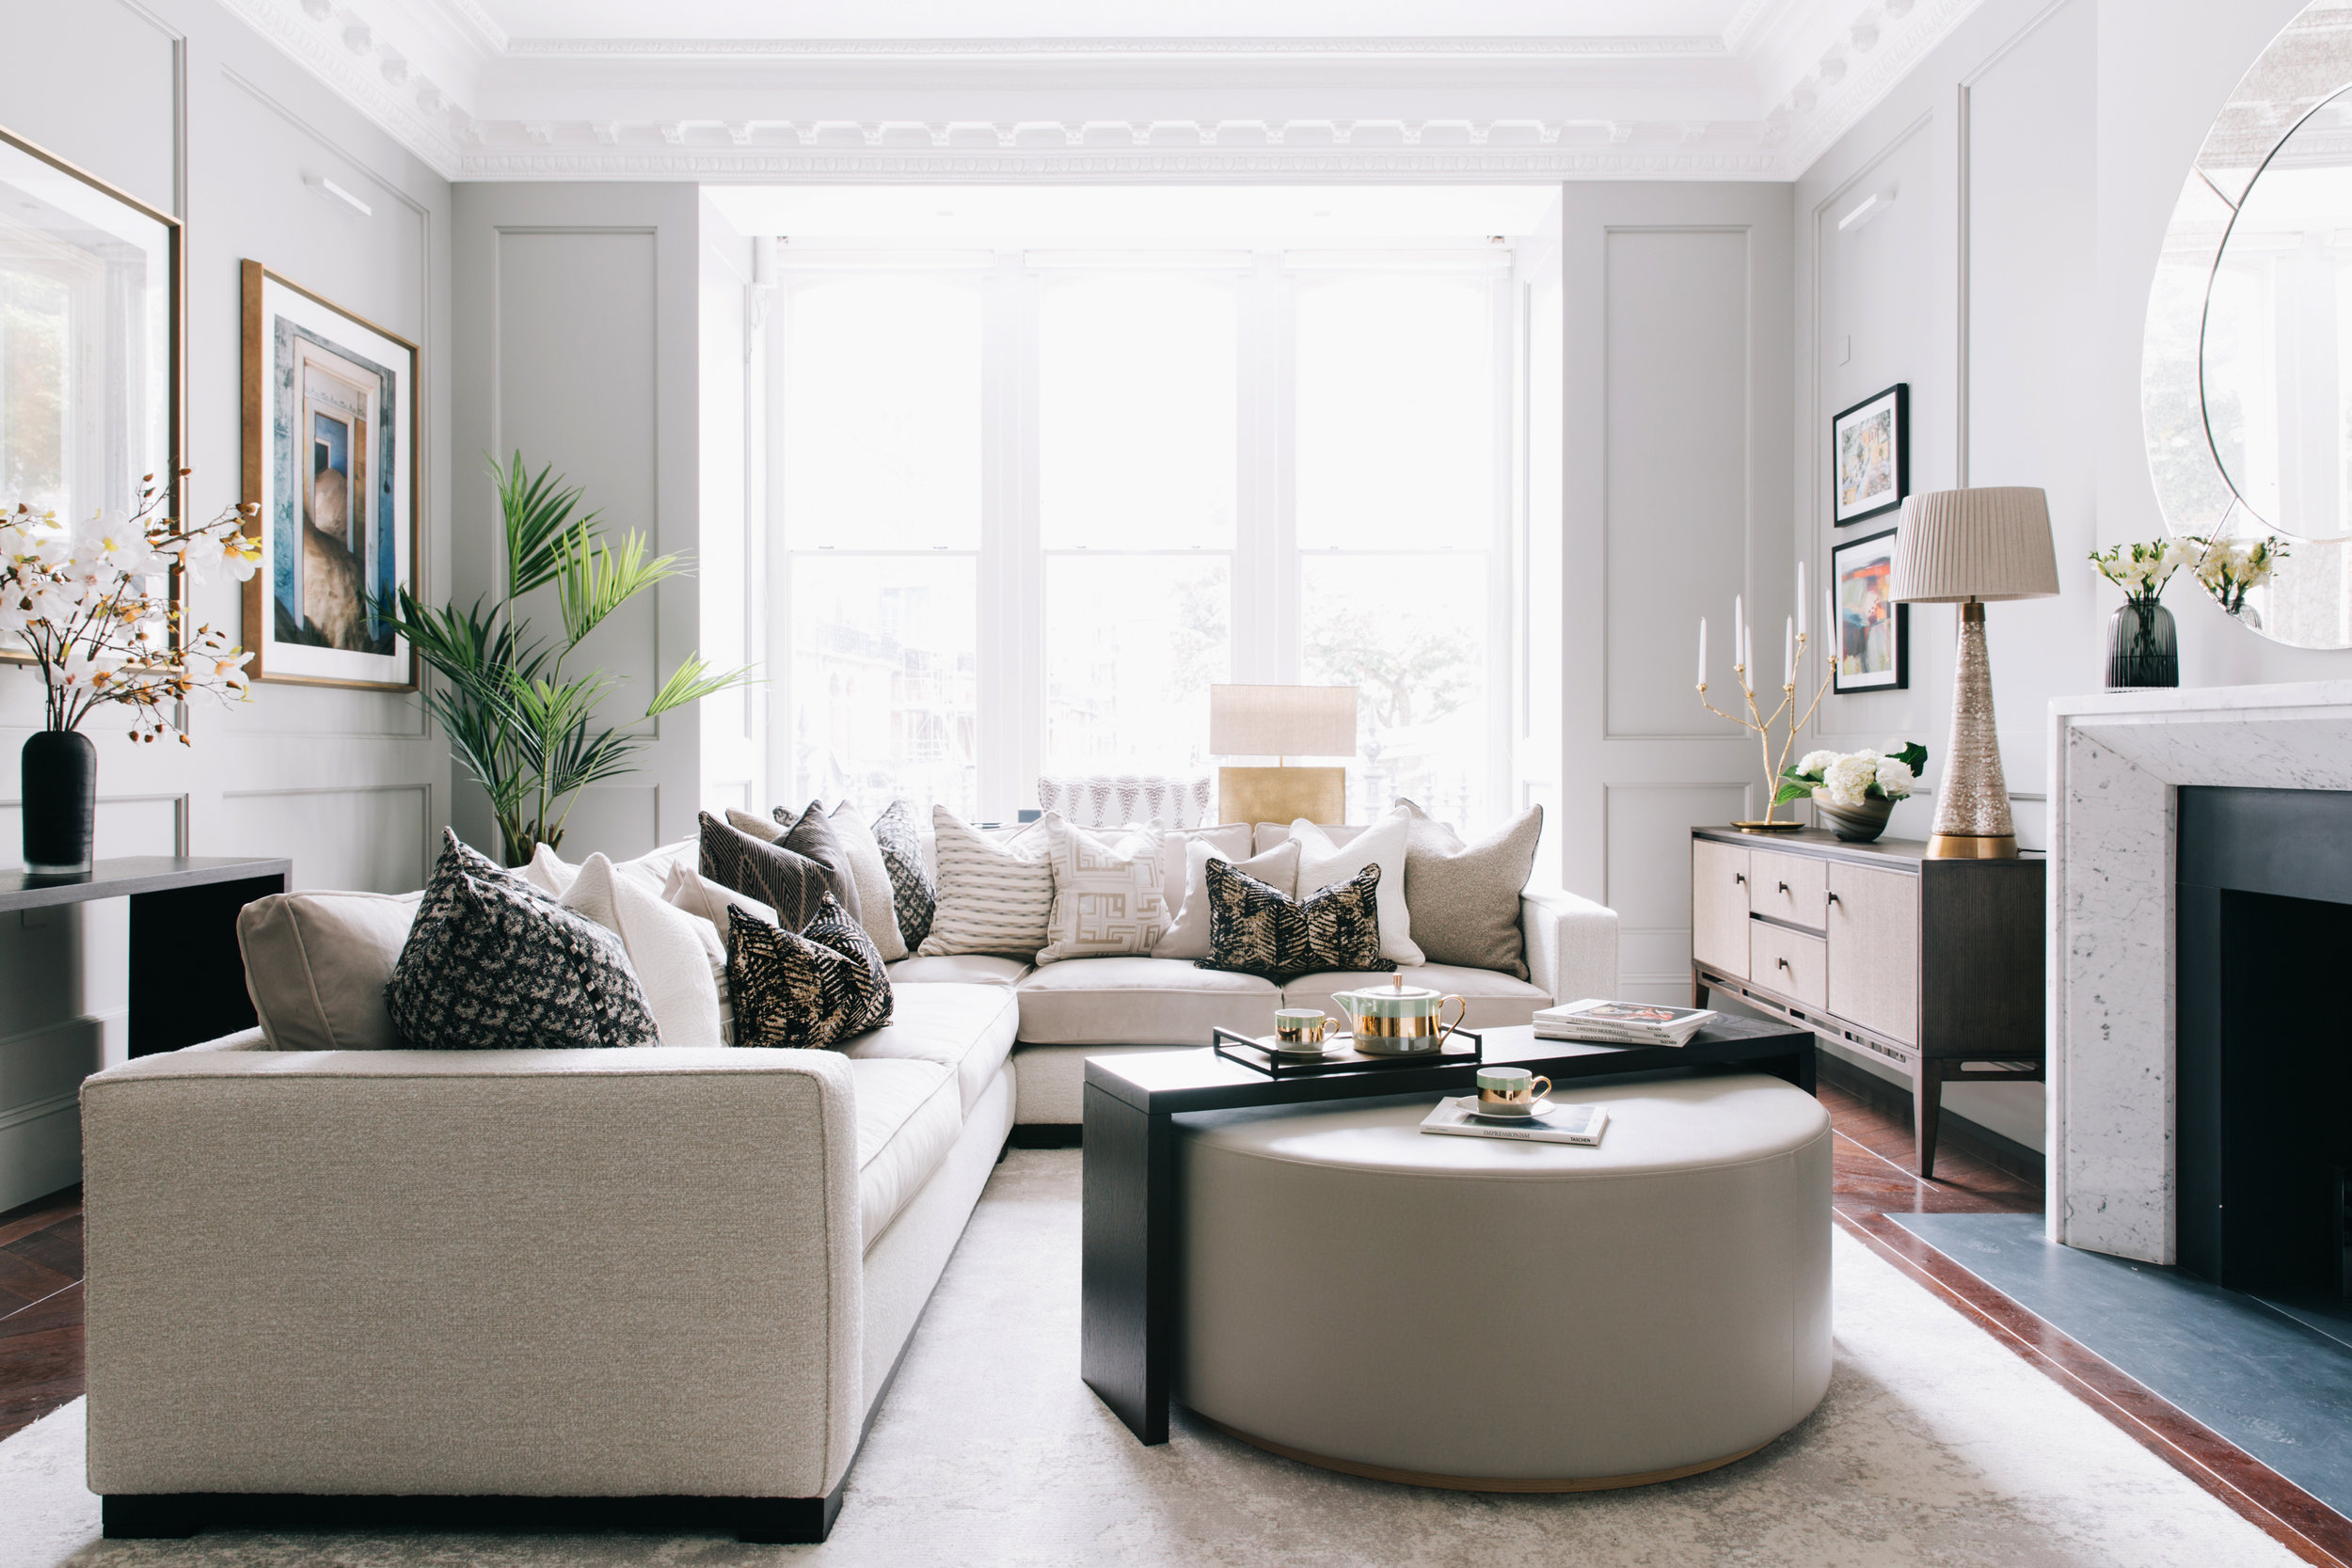 A_LONDON_The_Wetherby_02_living_room.jpg